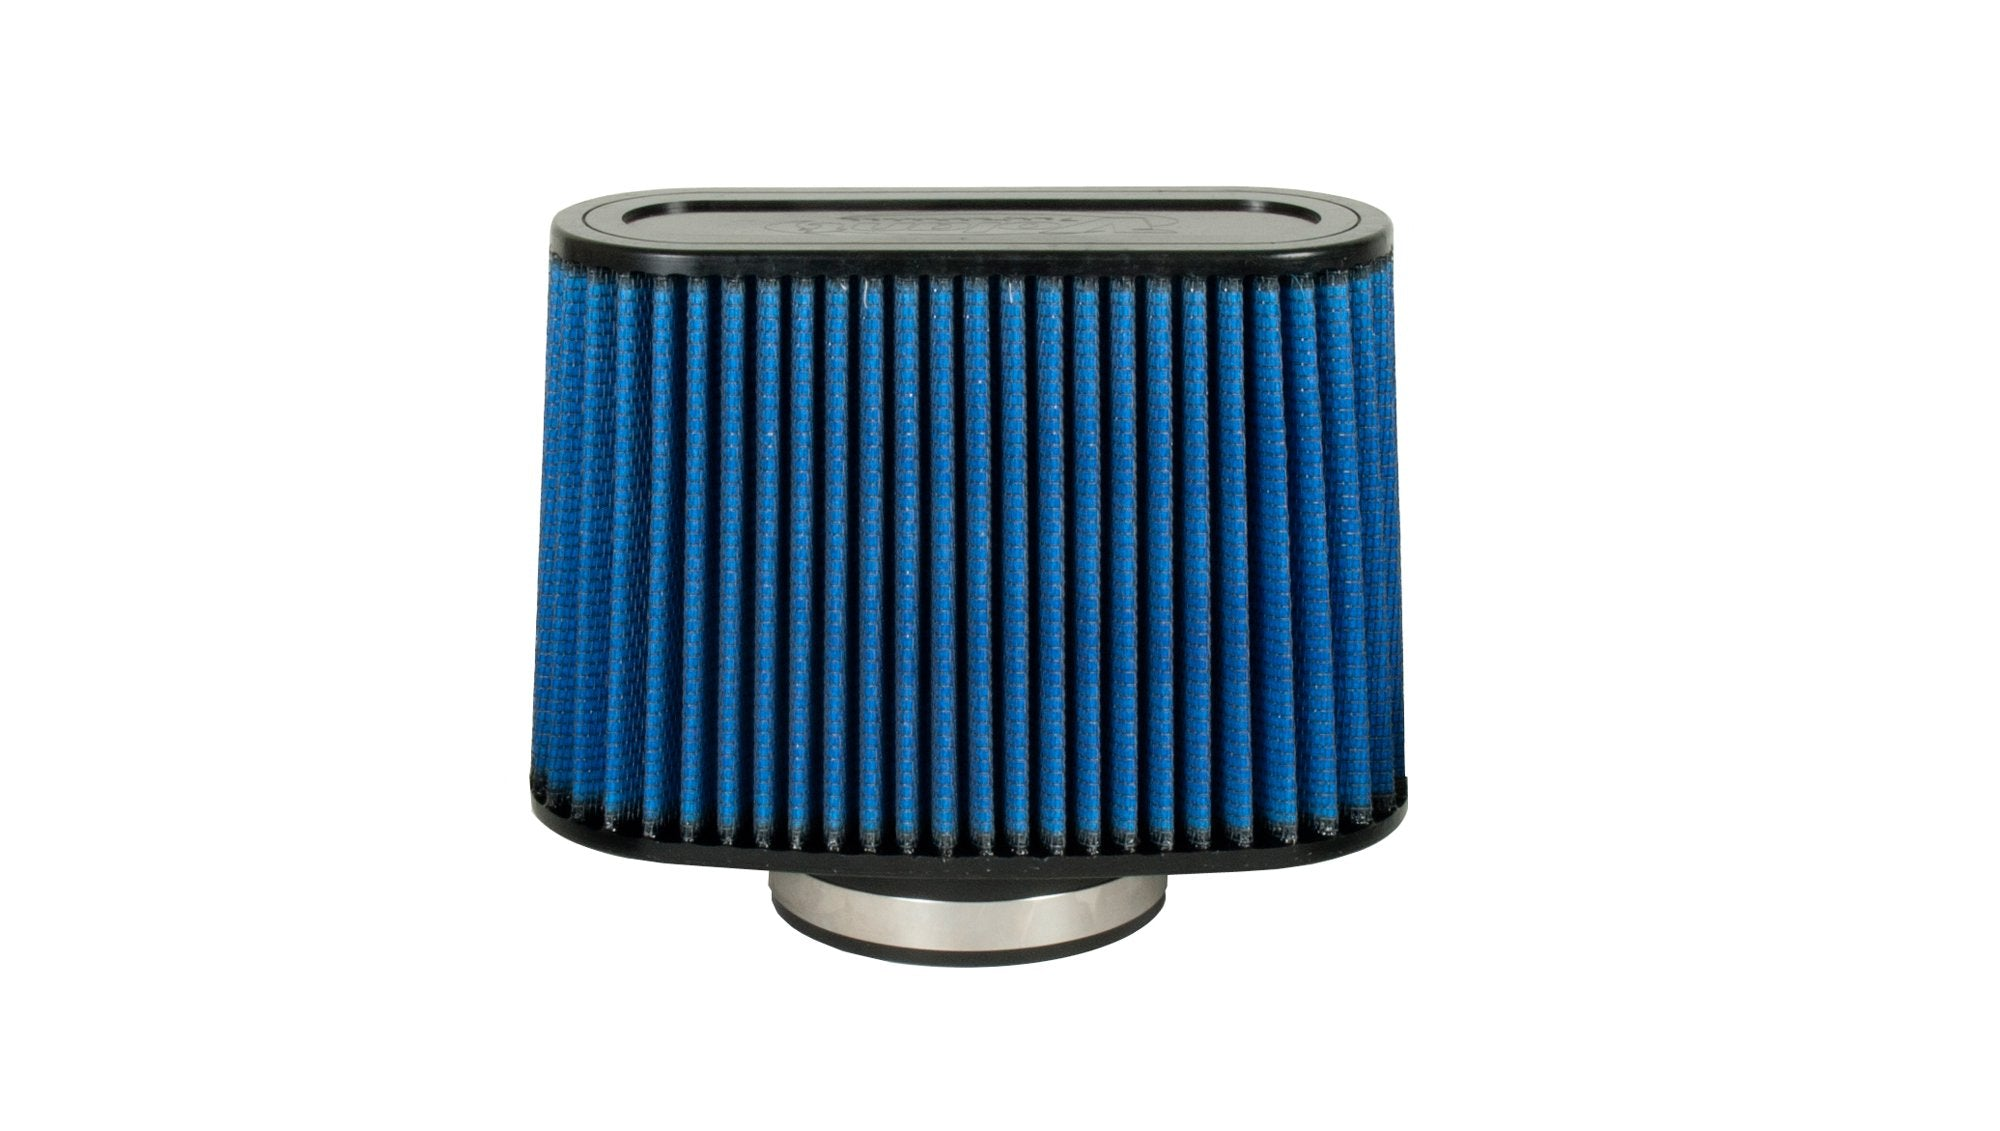 MaxFlow Oiled Air Filter (5123) Replacement Air Filter